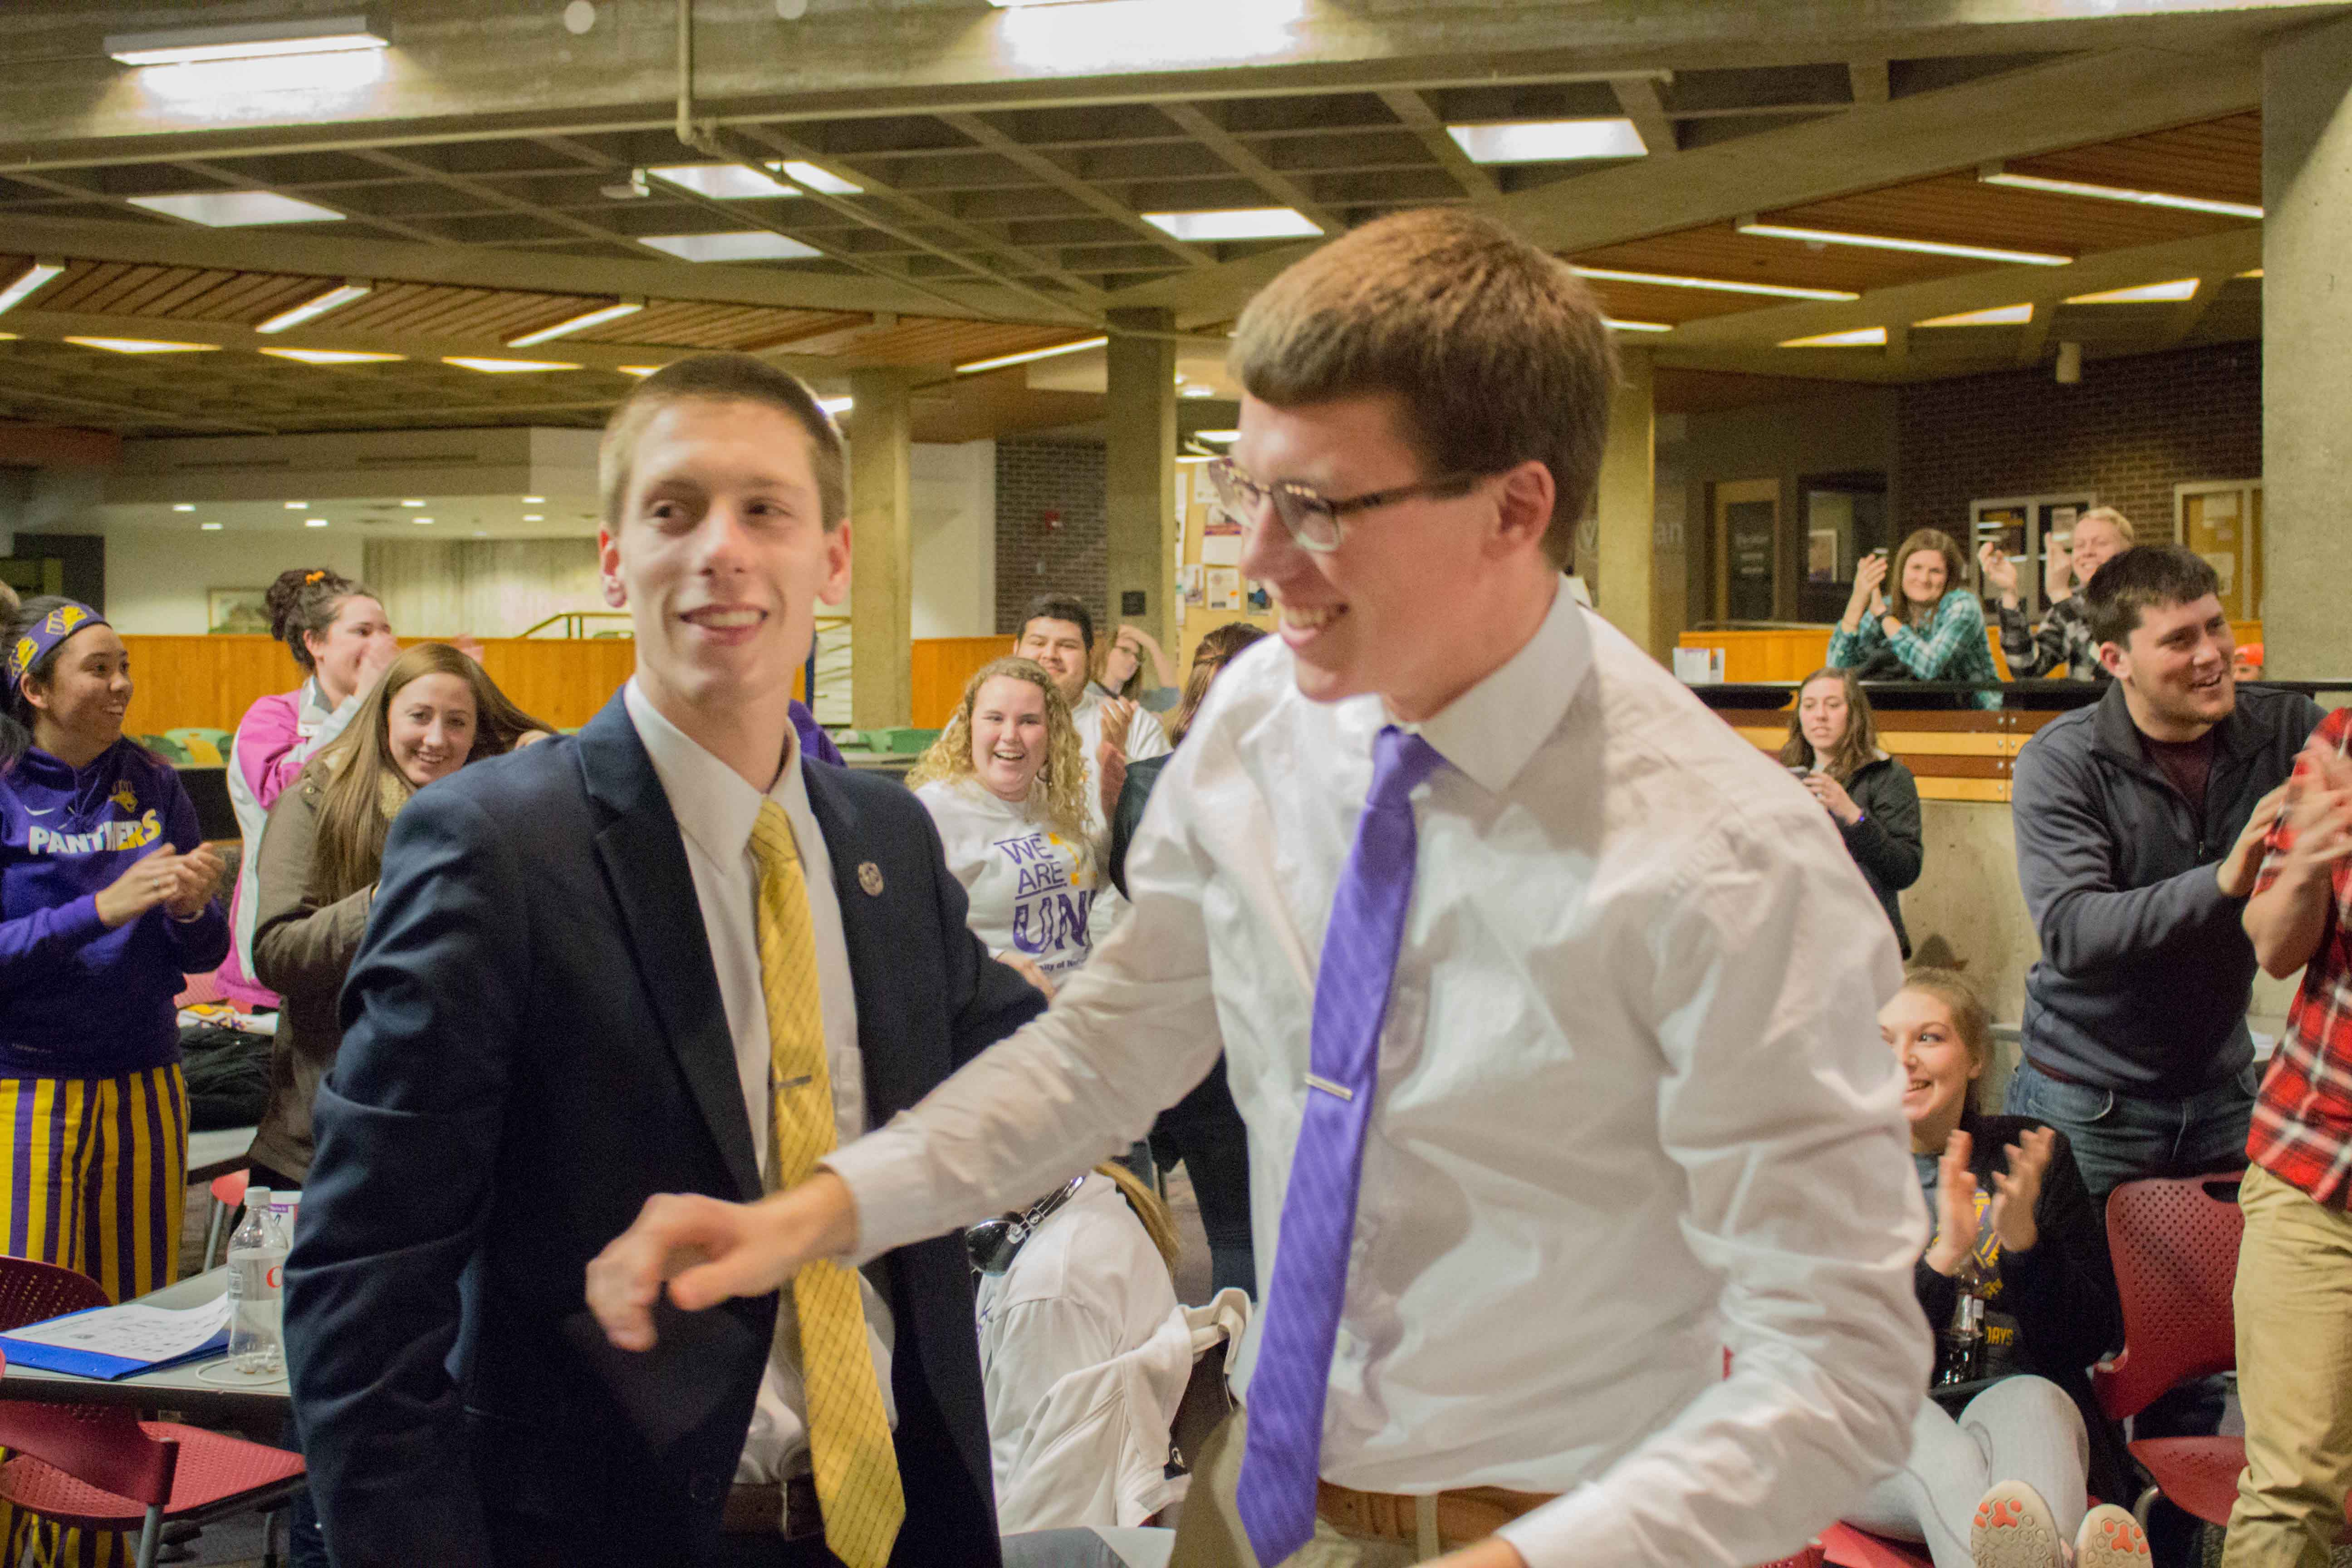 Hunter Flesch and Avery Johnson celebrate their NISG presidential election win. Sanctions had been considered for each campaign.